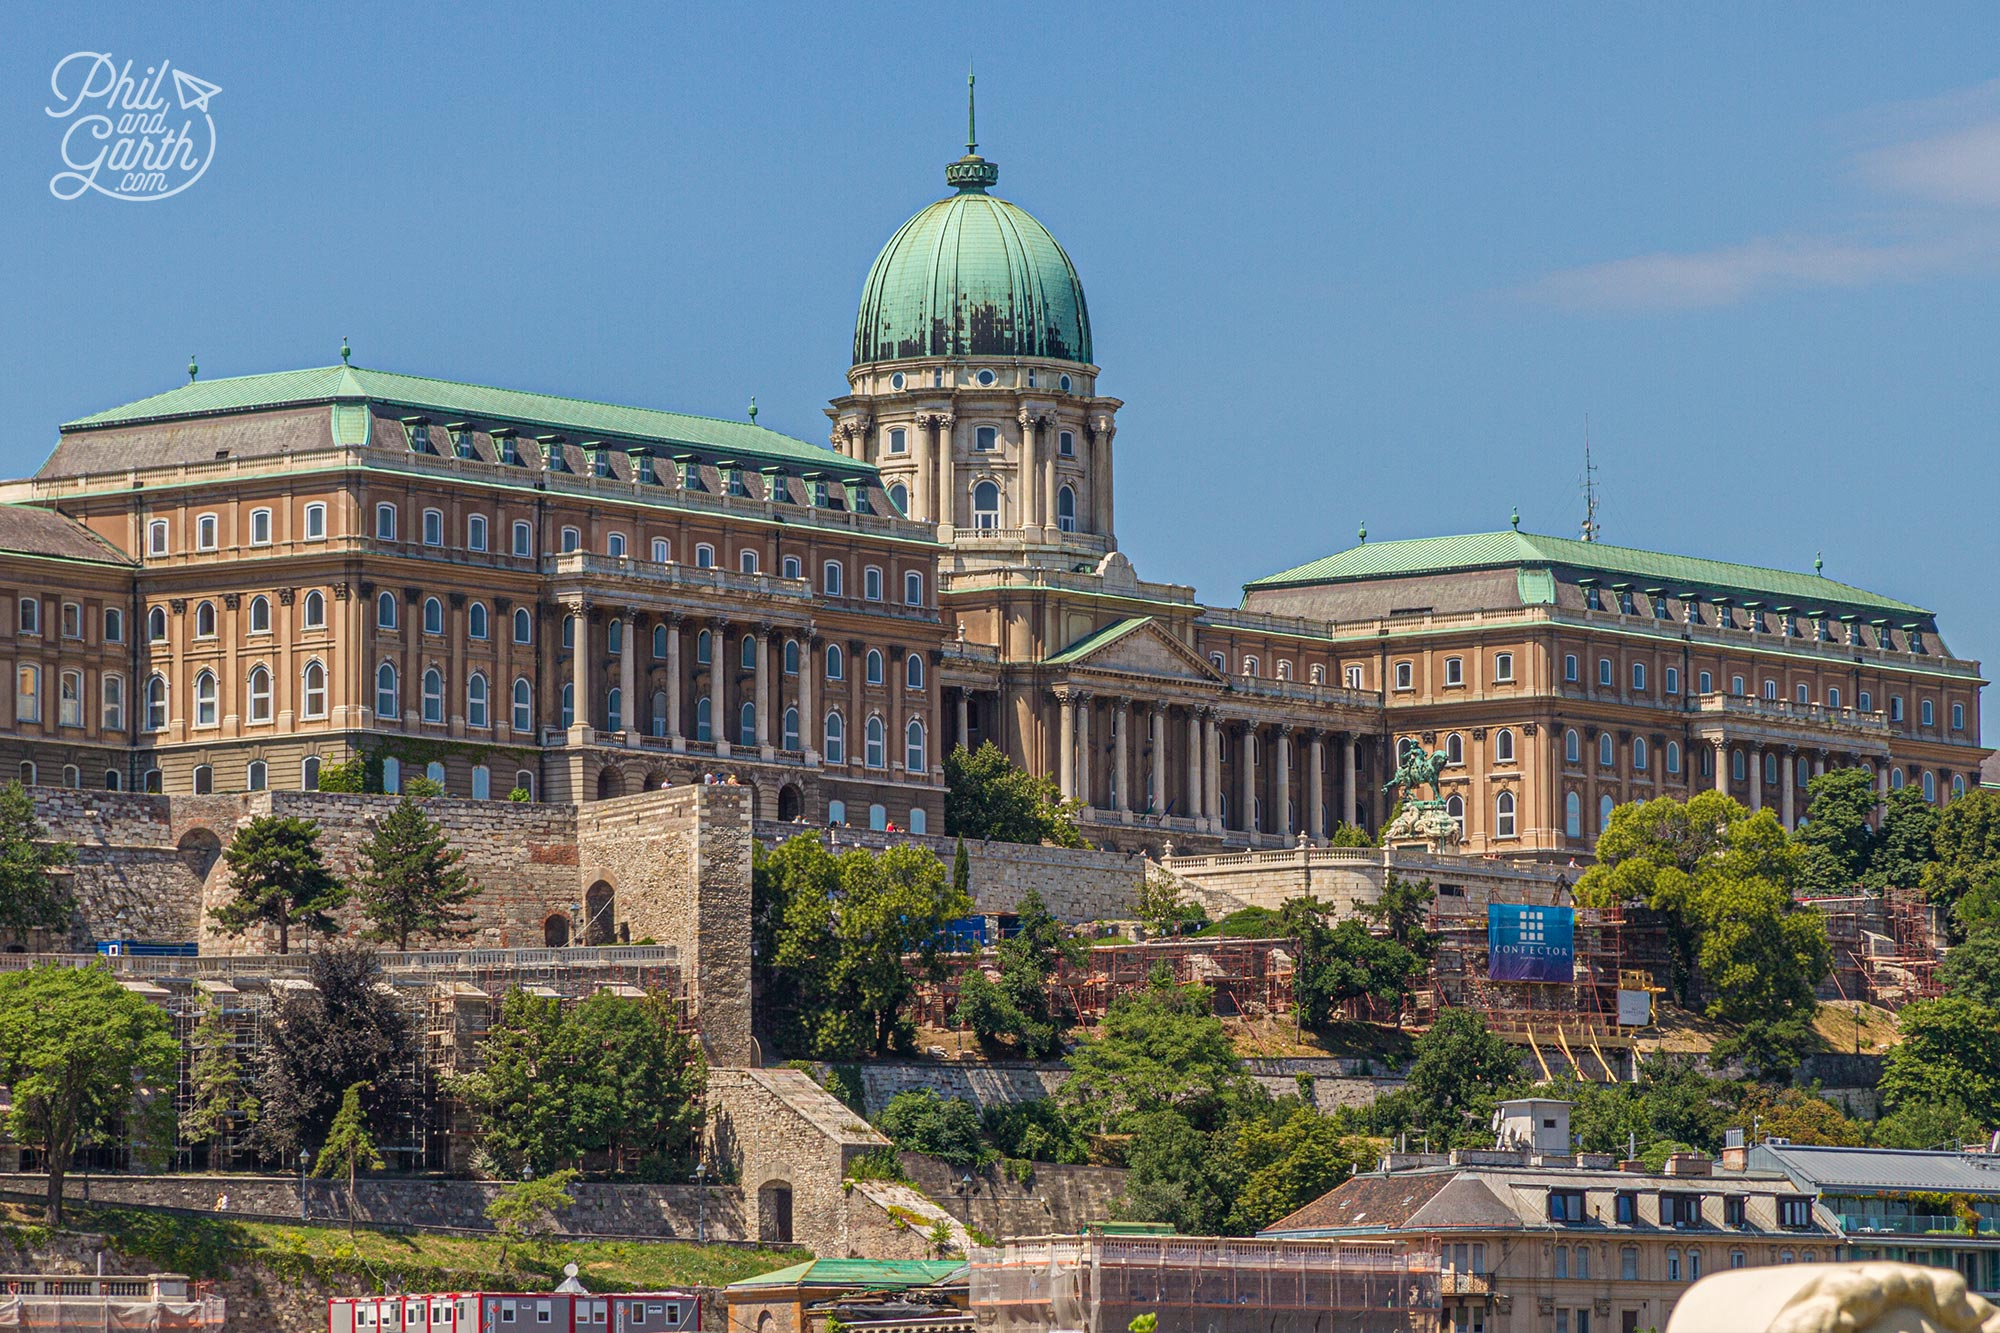 Buda Castle is a castle and palace complex that was home to the Hungarian Kings